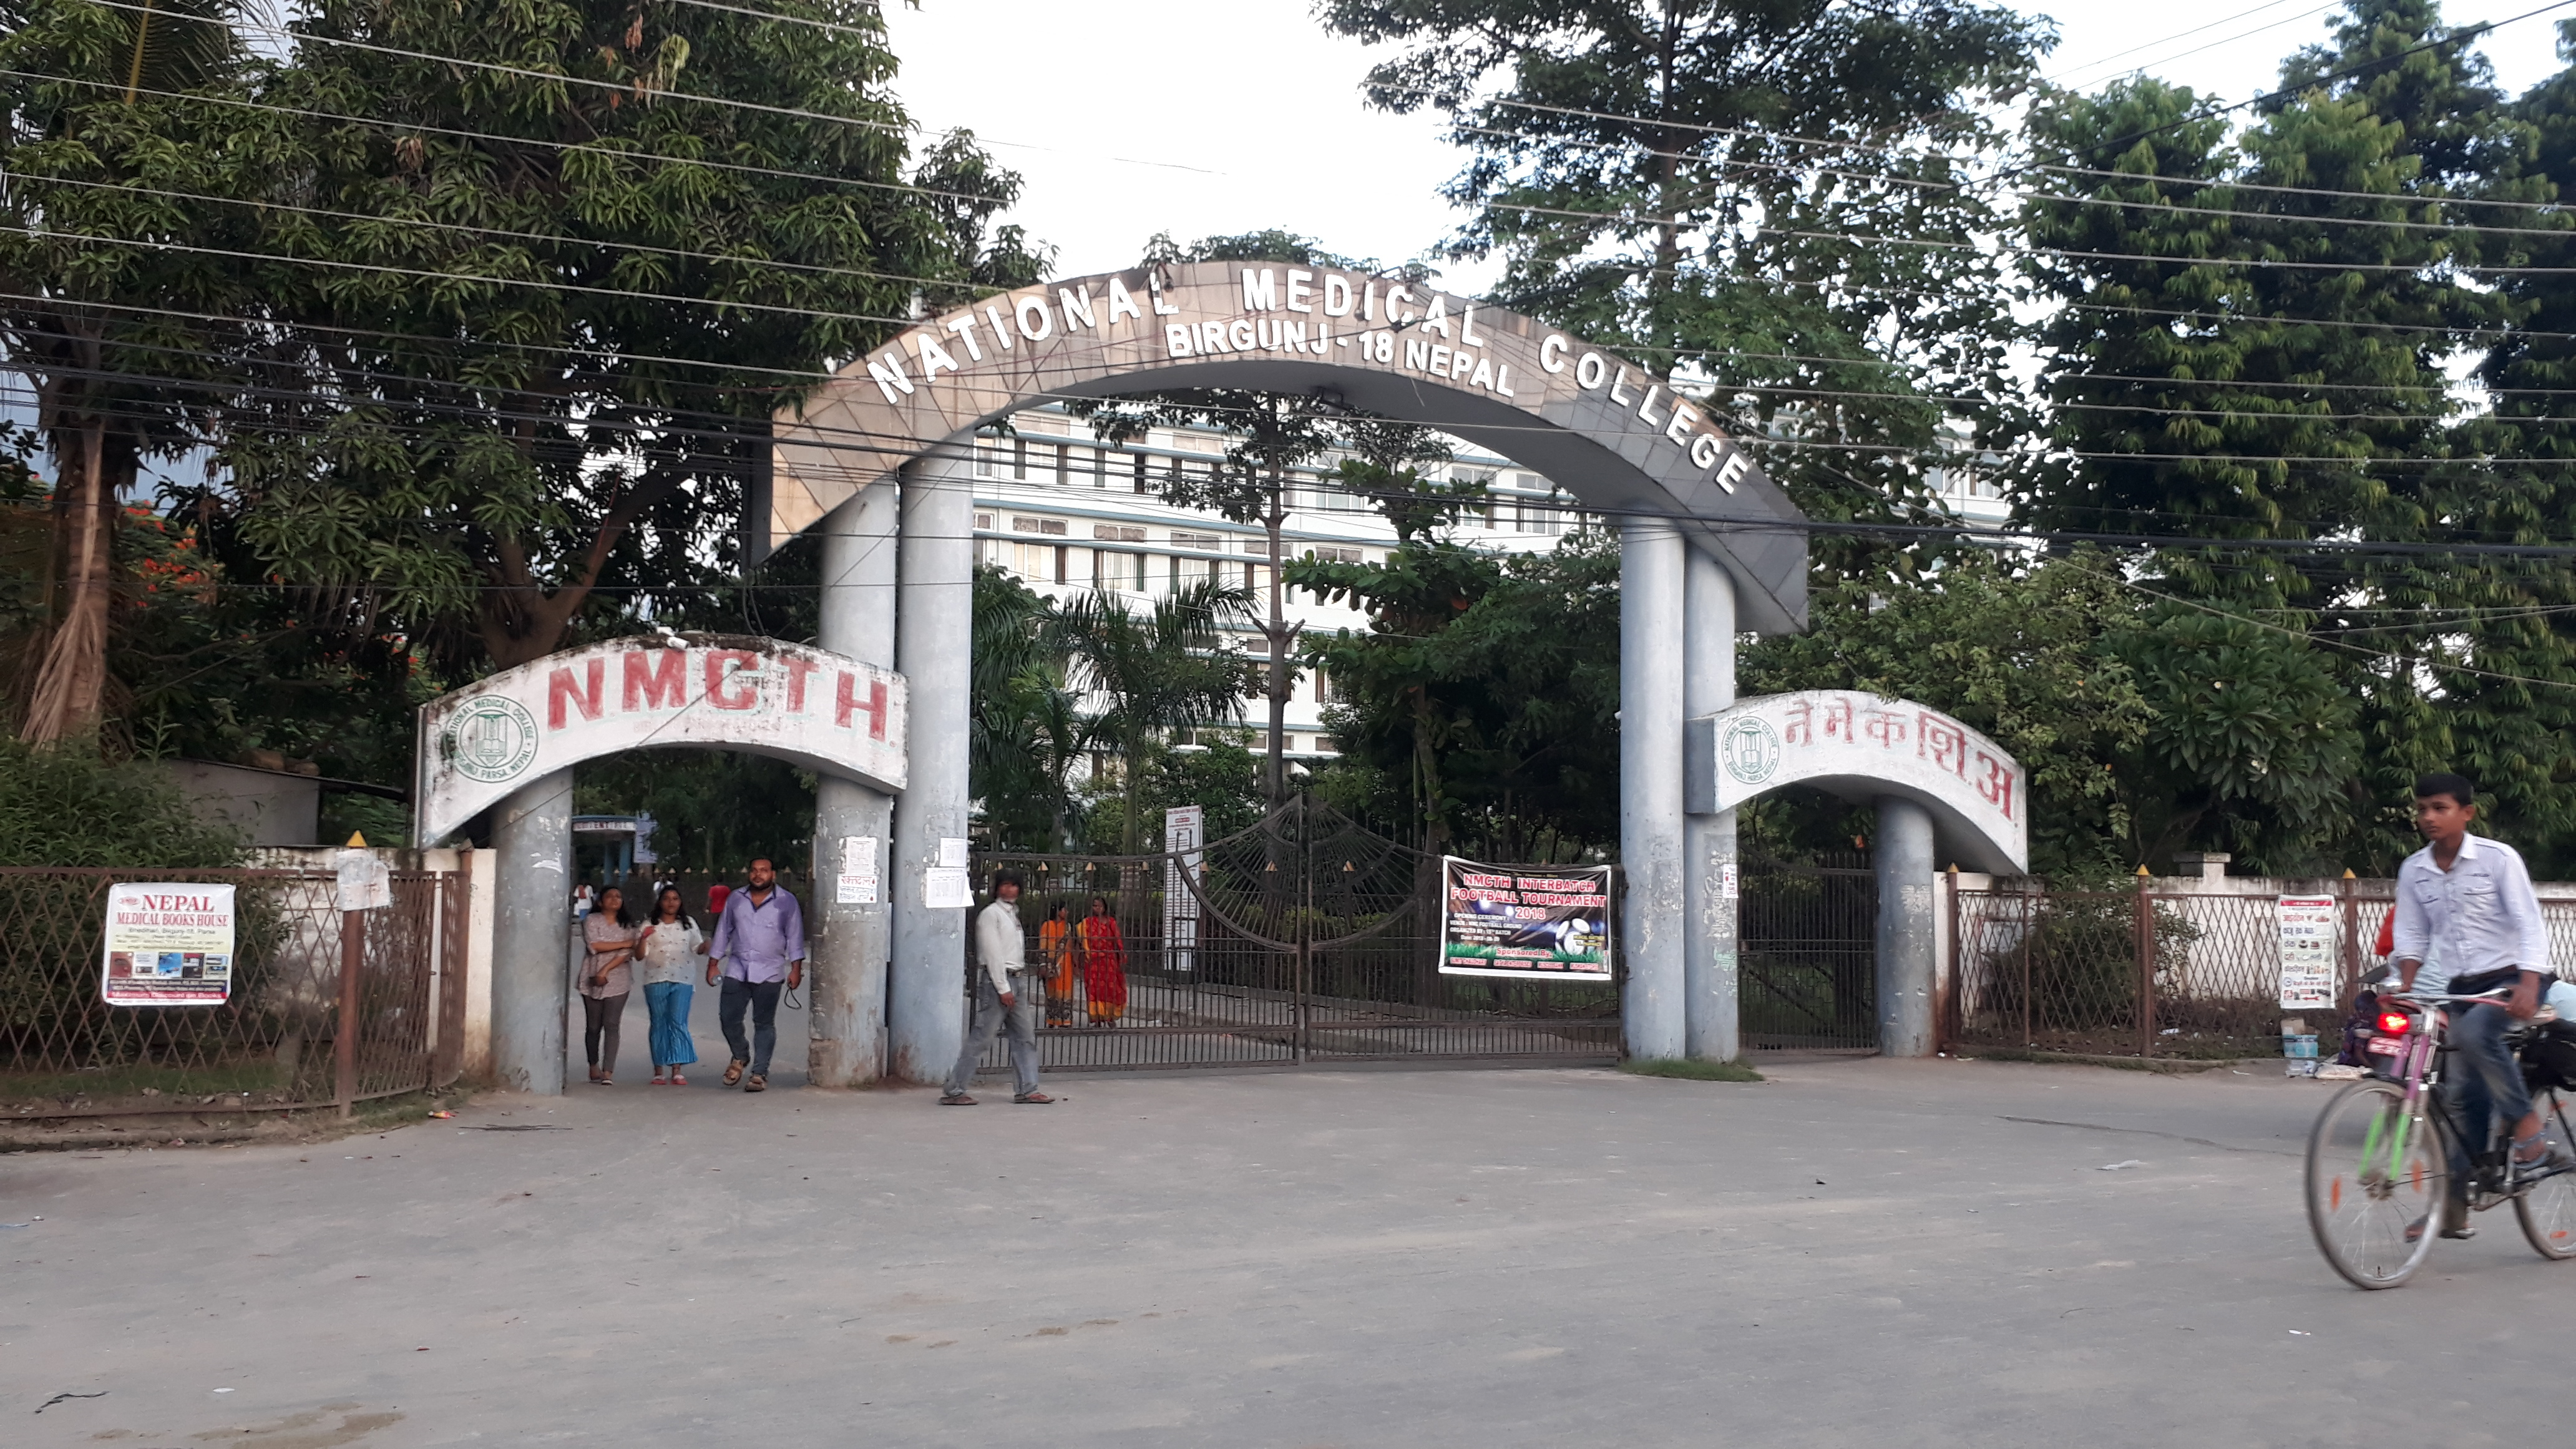 This undated image shows the entrace of National Medical College in Birgunj, Parsa district.